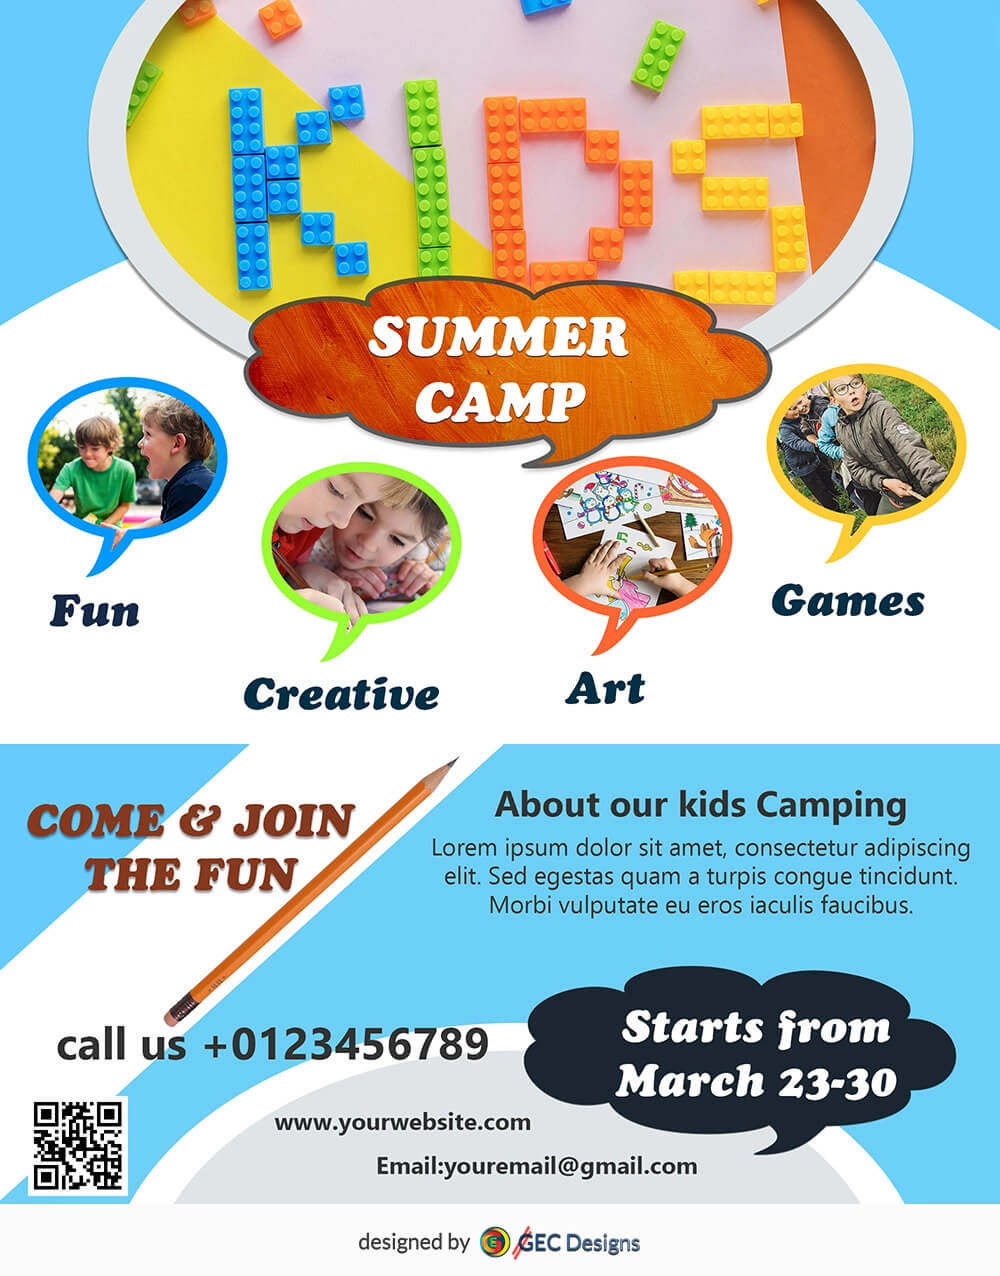 Download Free Kids Summer Camp Flyer Design Templates Intended For Summer Camp Brochure Template Free Download